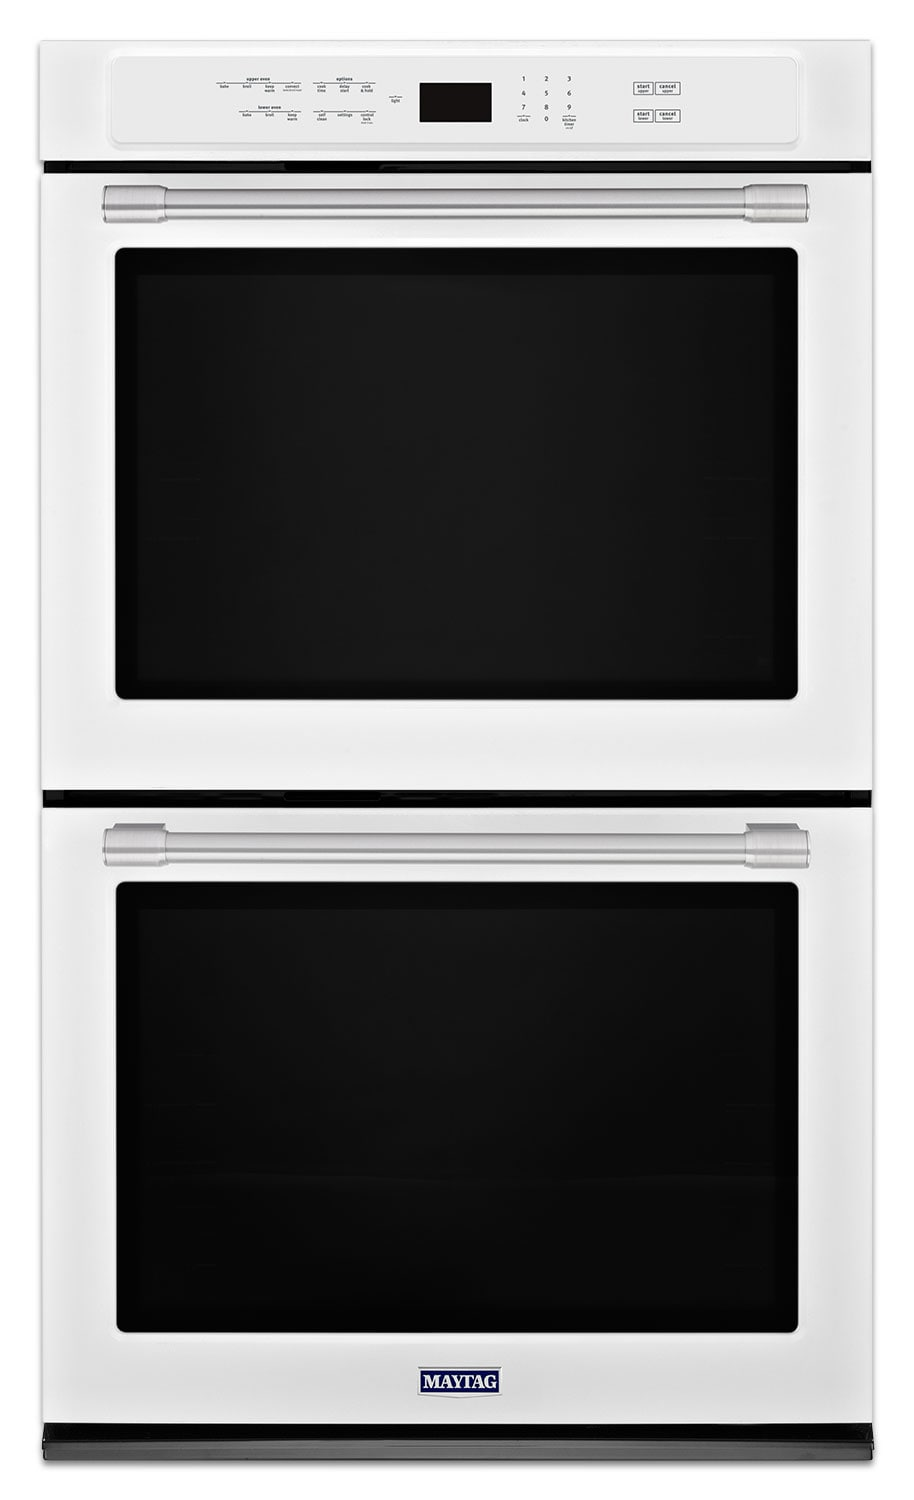 Cooking Products - Maytag White Electric Double Wall Oven (10.0 Cu. Ft.) - MEW9630FW